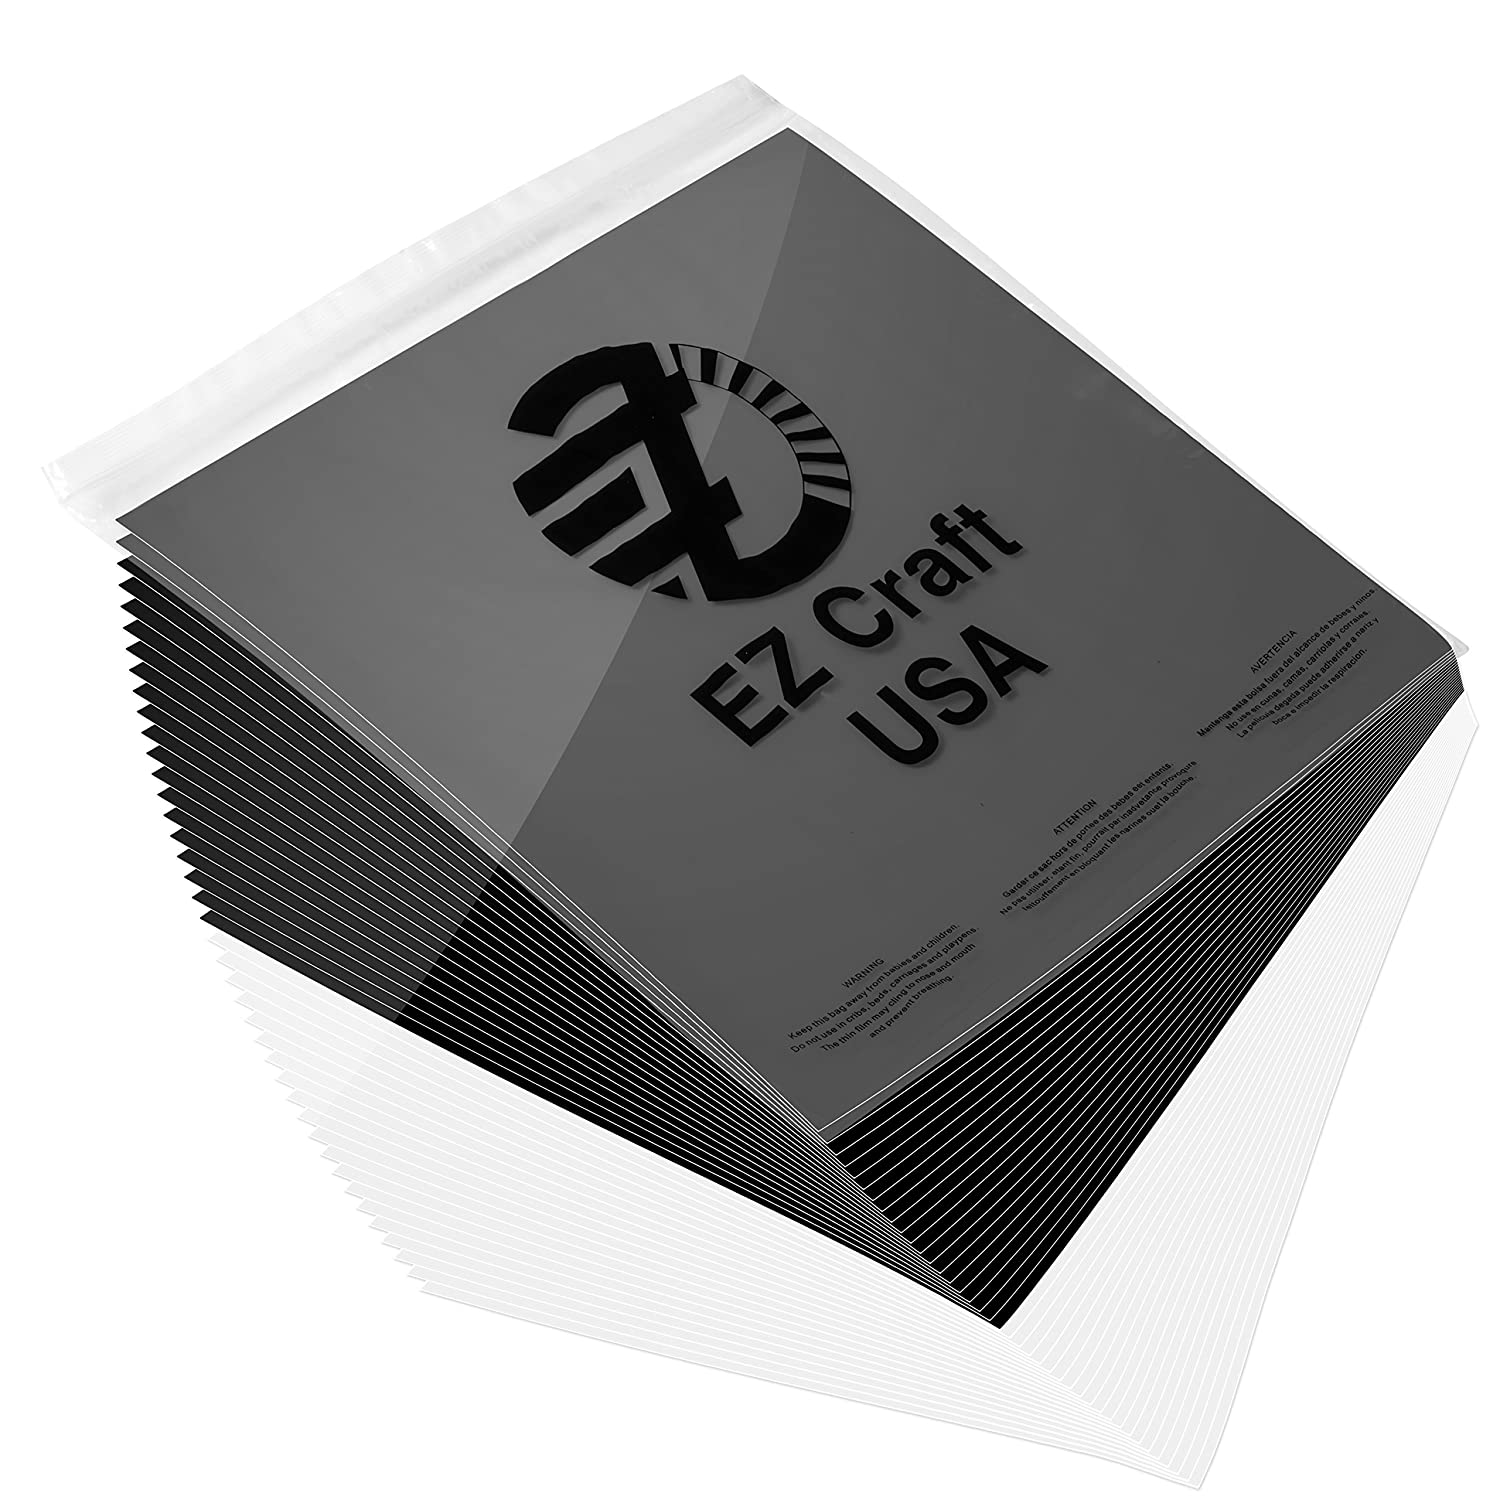 """Permanent Adhesive Backed Glossy Vinyl Sheets by EZ Craft USA 12/"""" x 12/"""" 40 Glossy Black and White Sheets Works with Cricut and Other Cutters"""